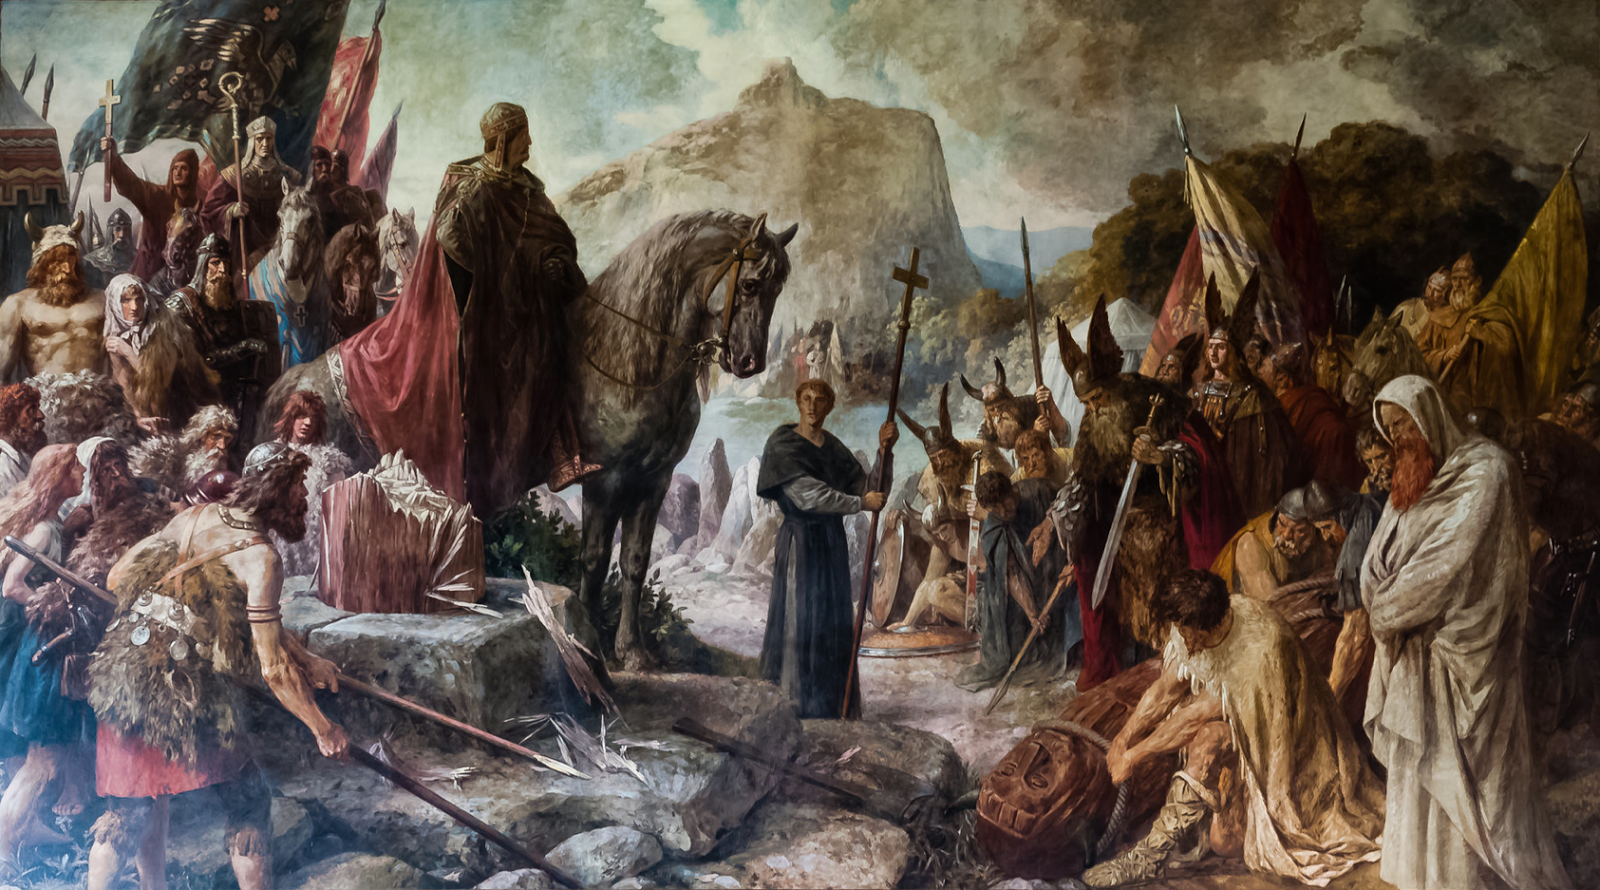 """ Charlemagne destroys the Irminsul"" by Hermann Wislicenus  (1885)"